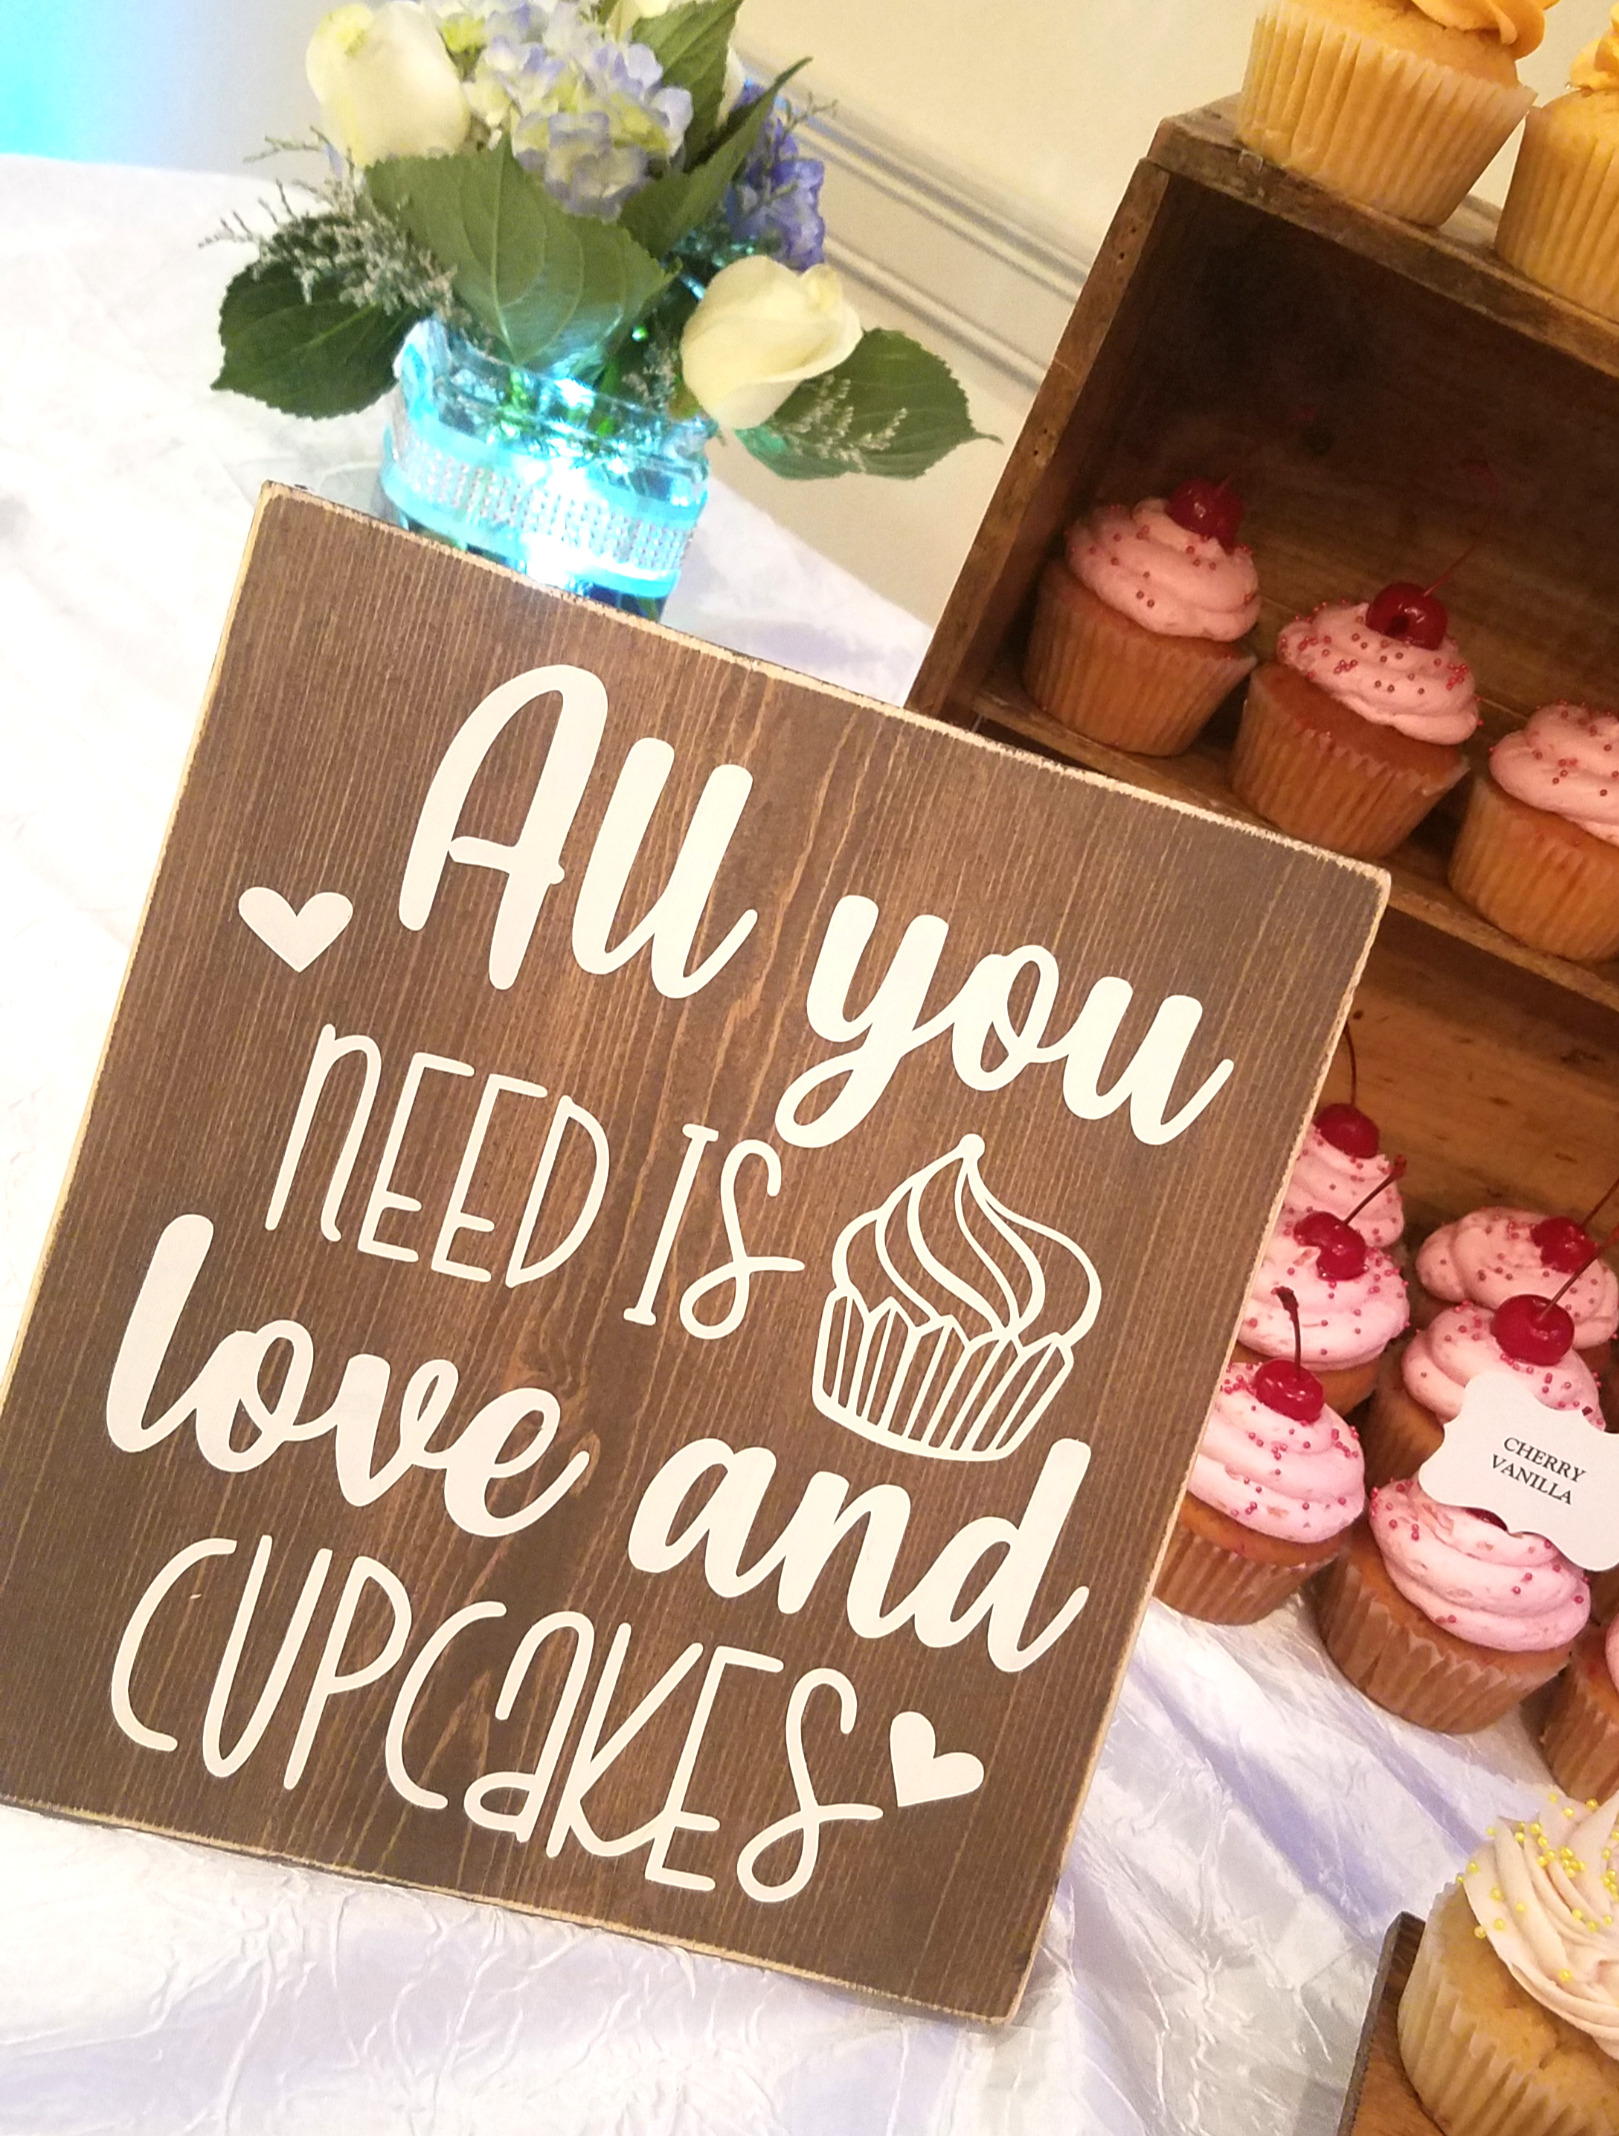 Love & Cupcakes